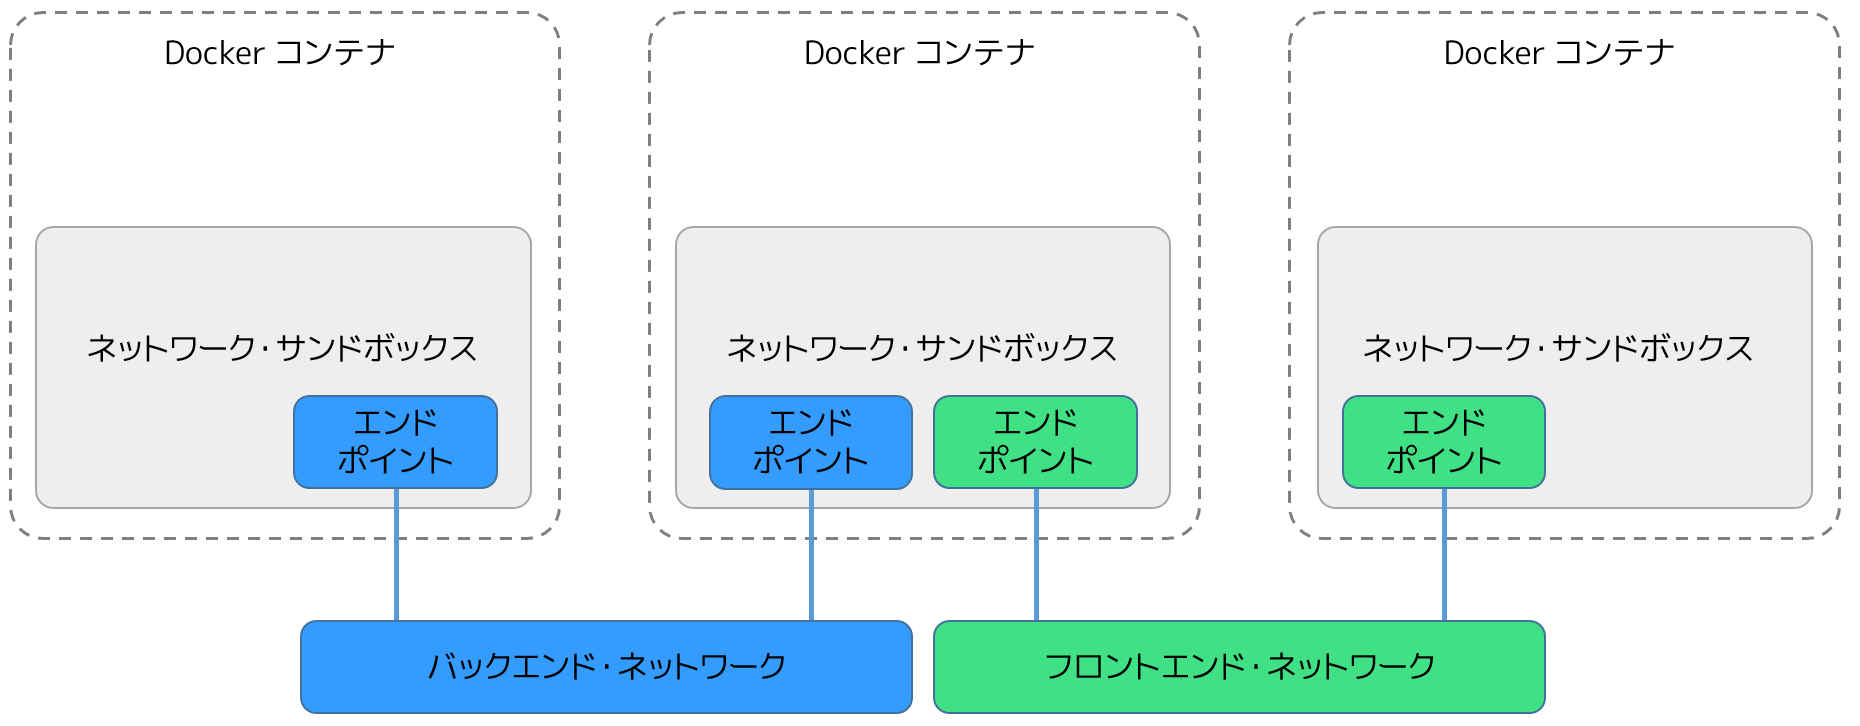 docker-network01.png